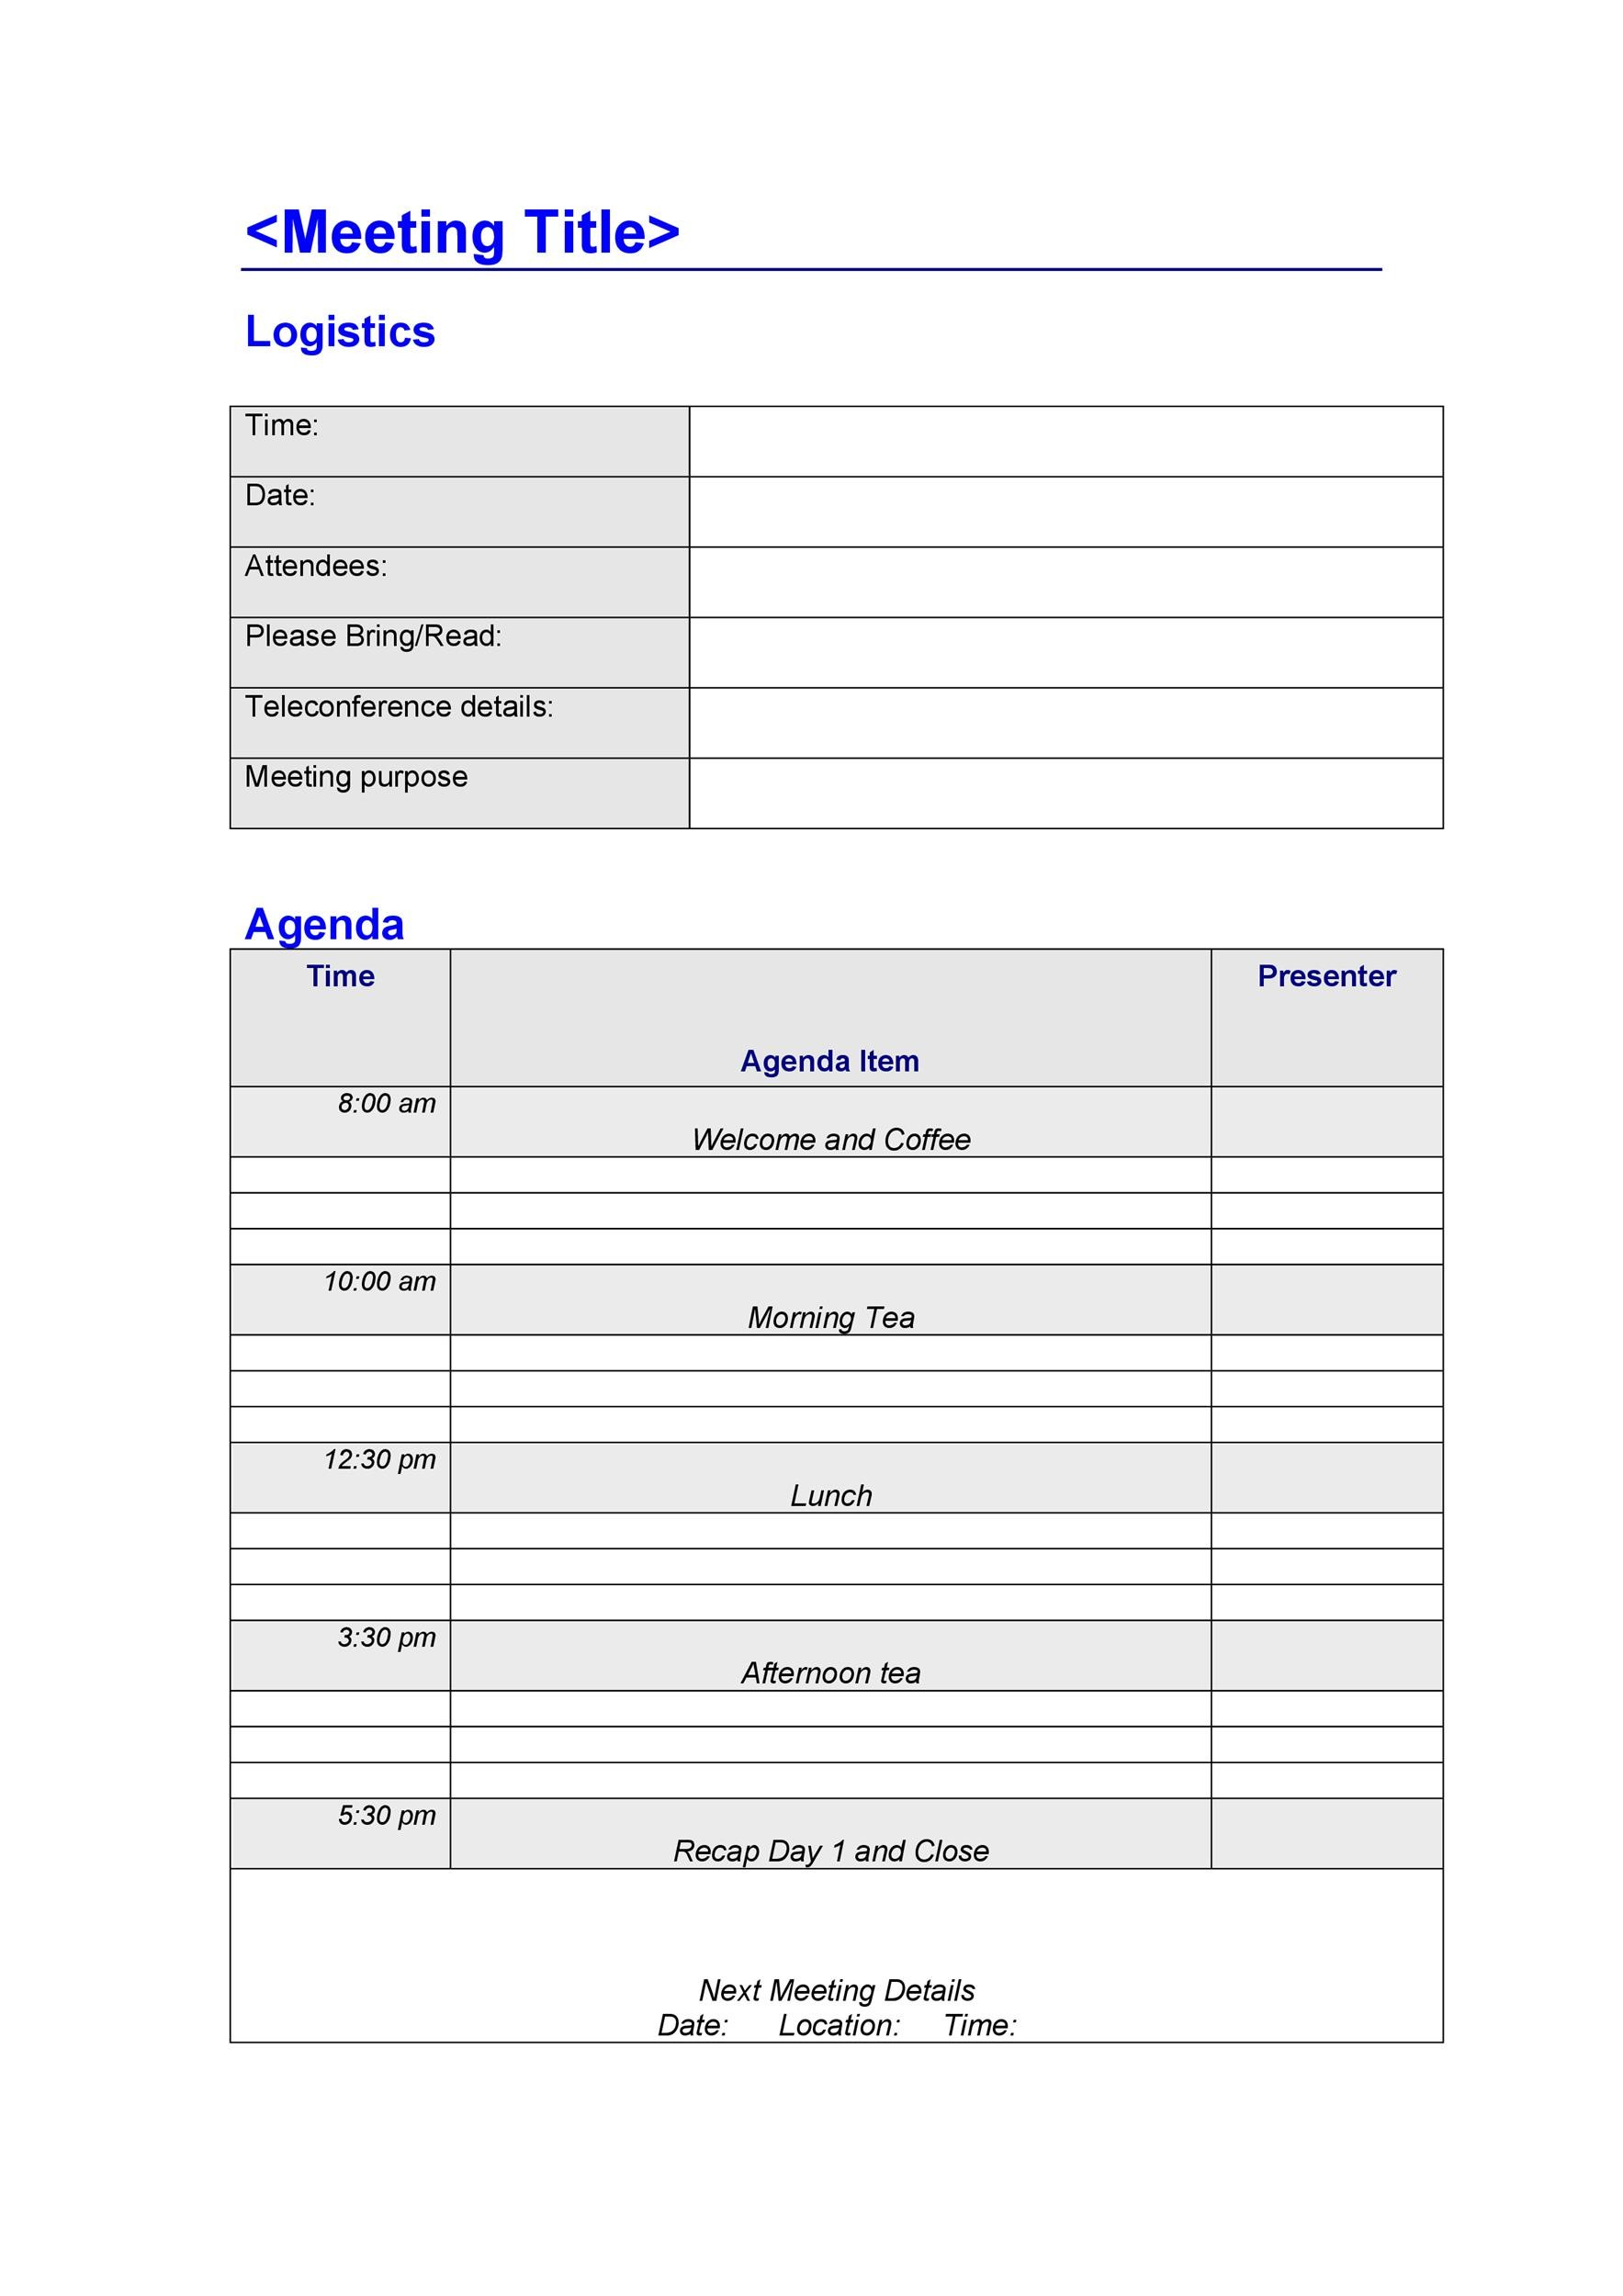 Agenda Examples School Council Meeting Sample Agenda School Agenda